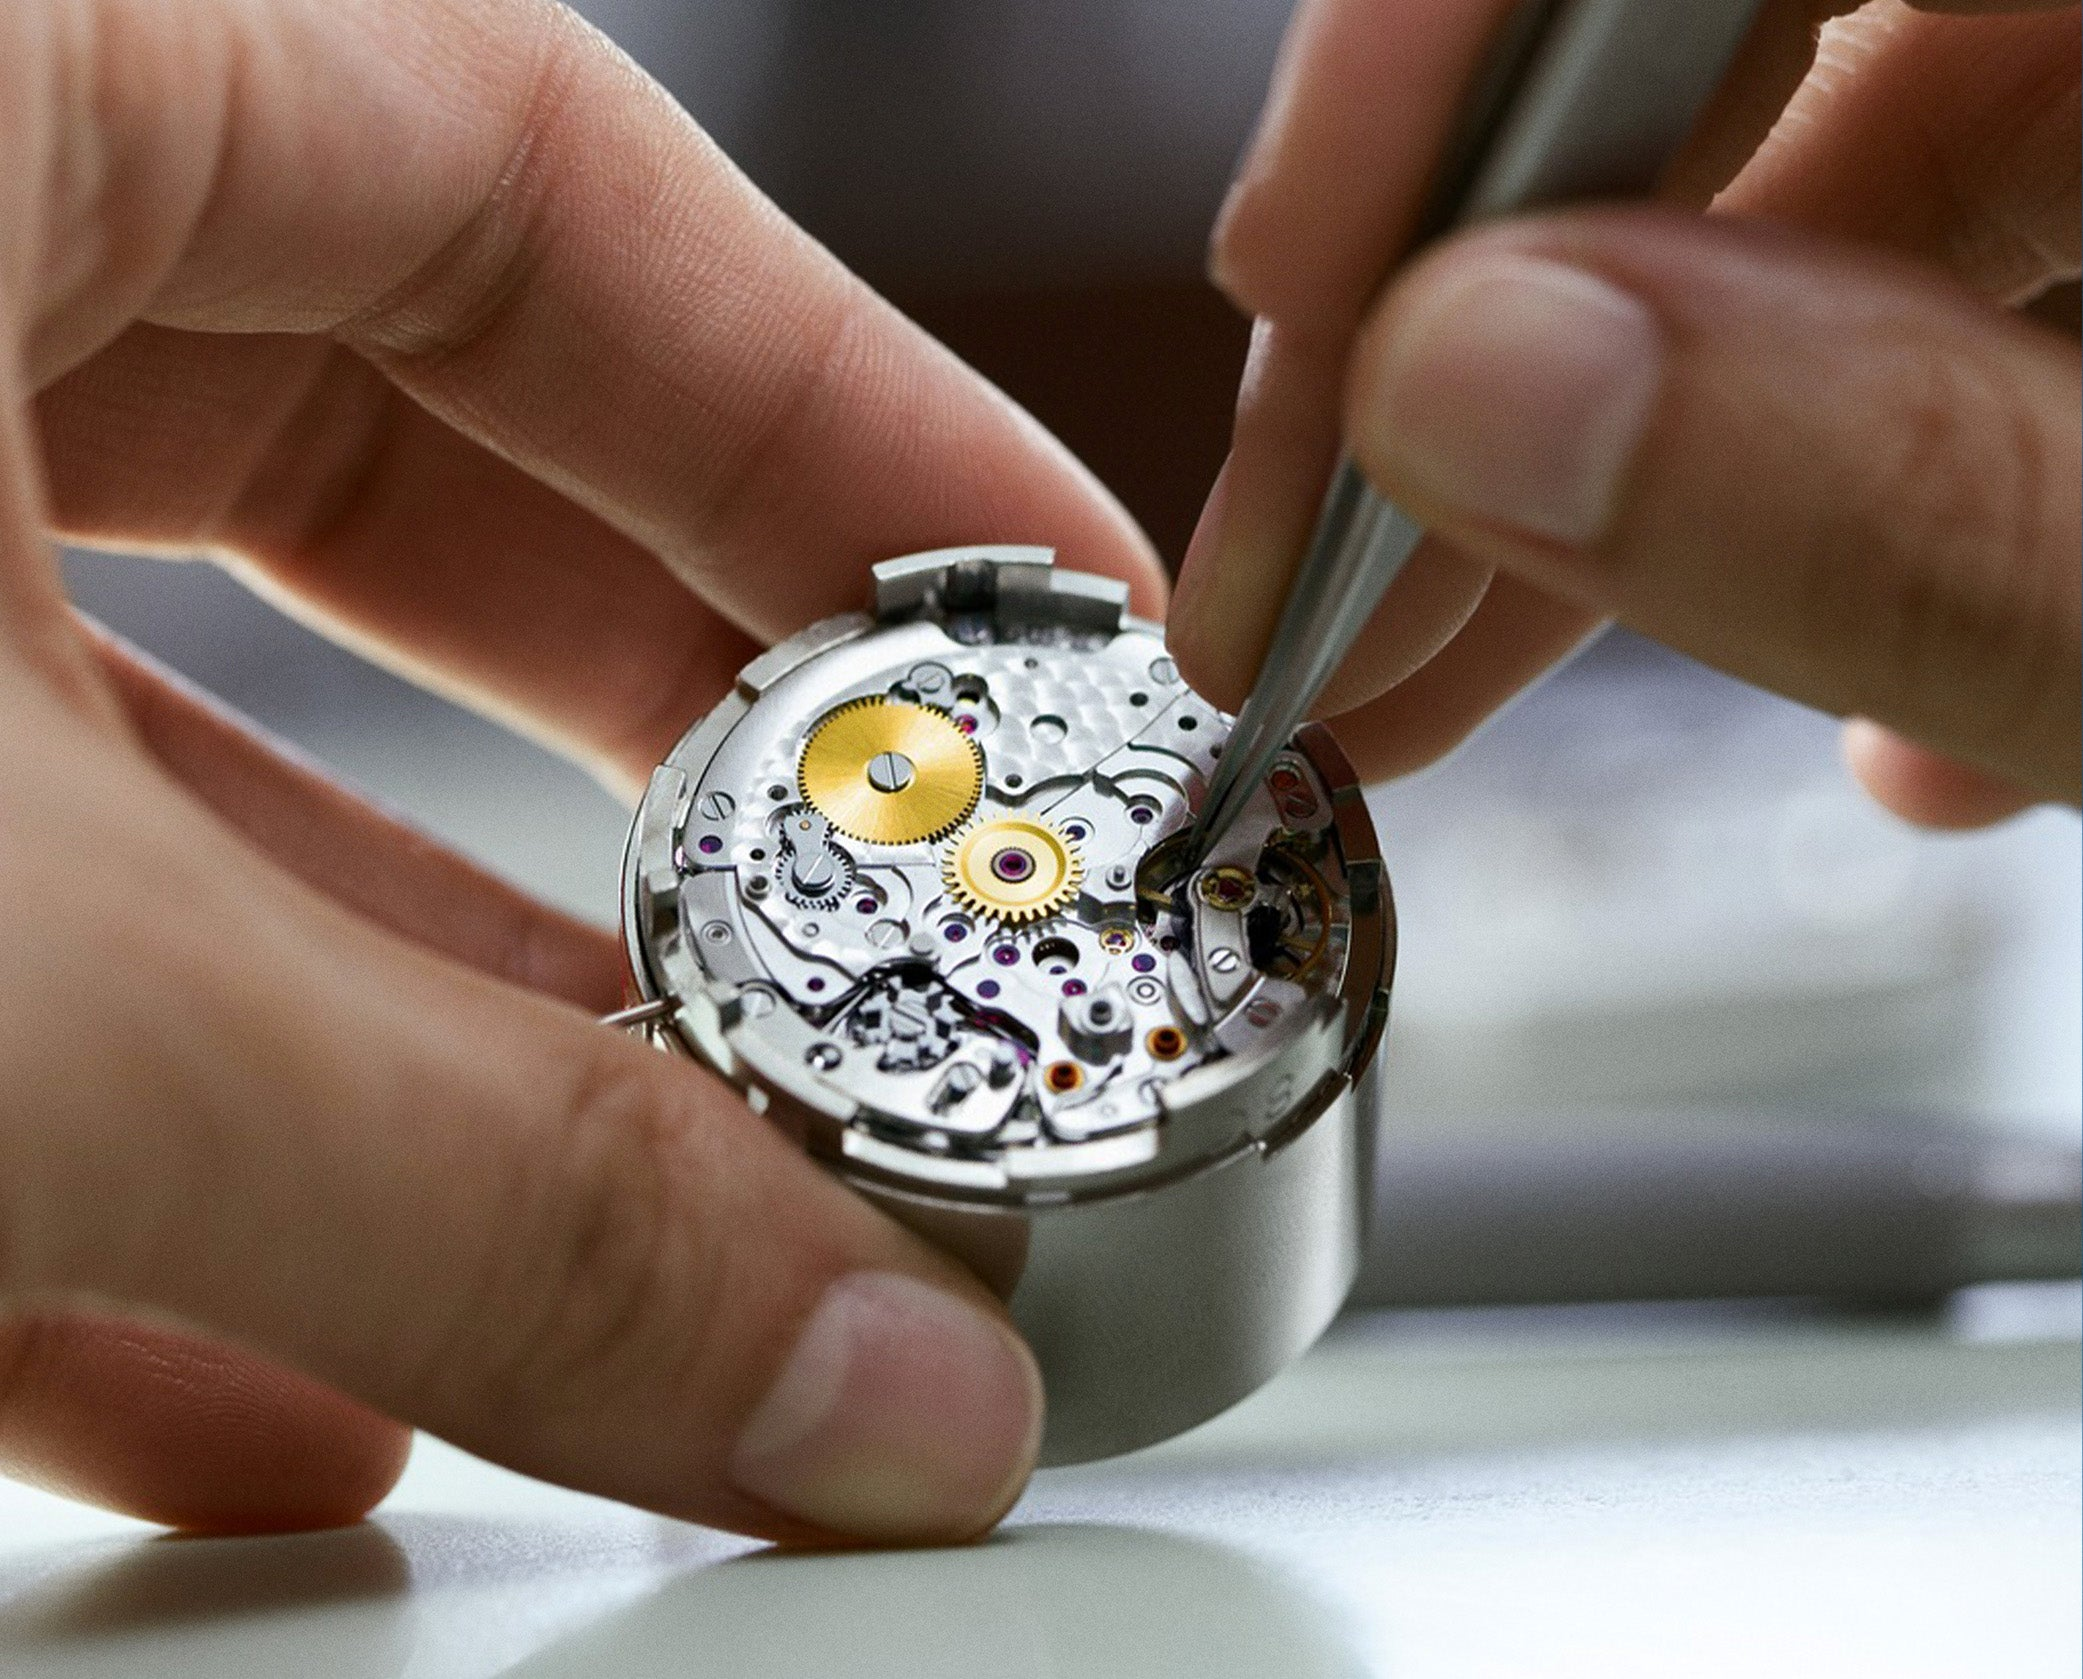 Rolex movement construction in In-house or ébauche, and does it even matter anymore? For A Collected Man London